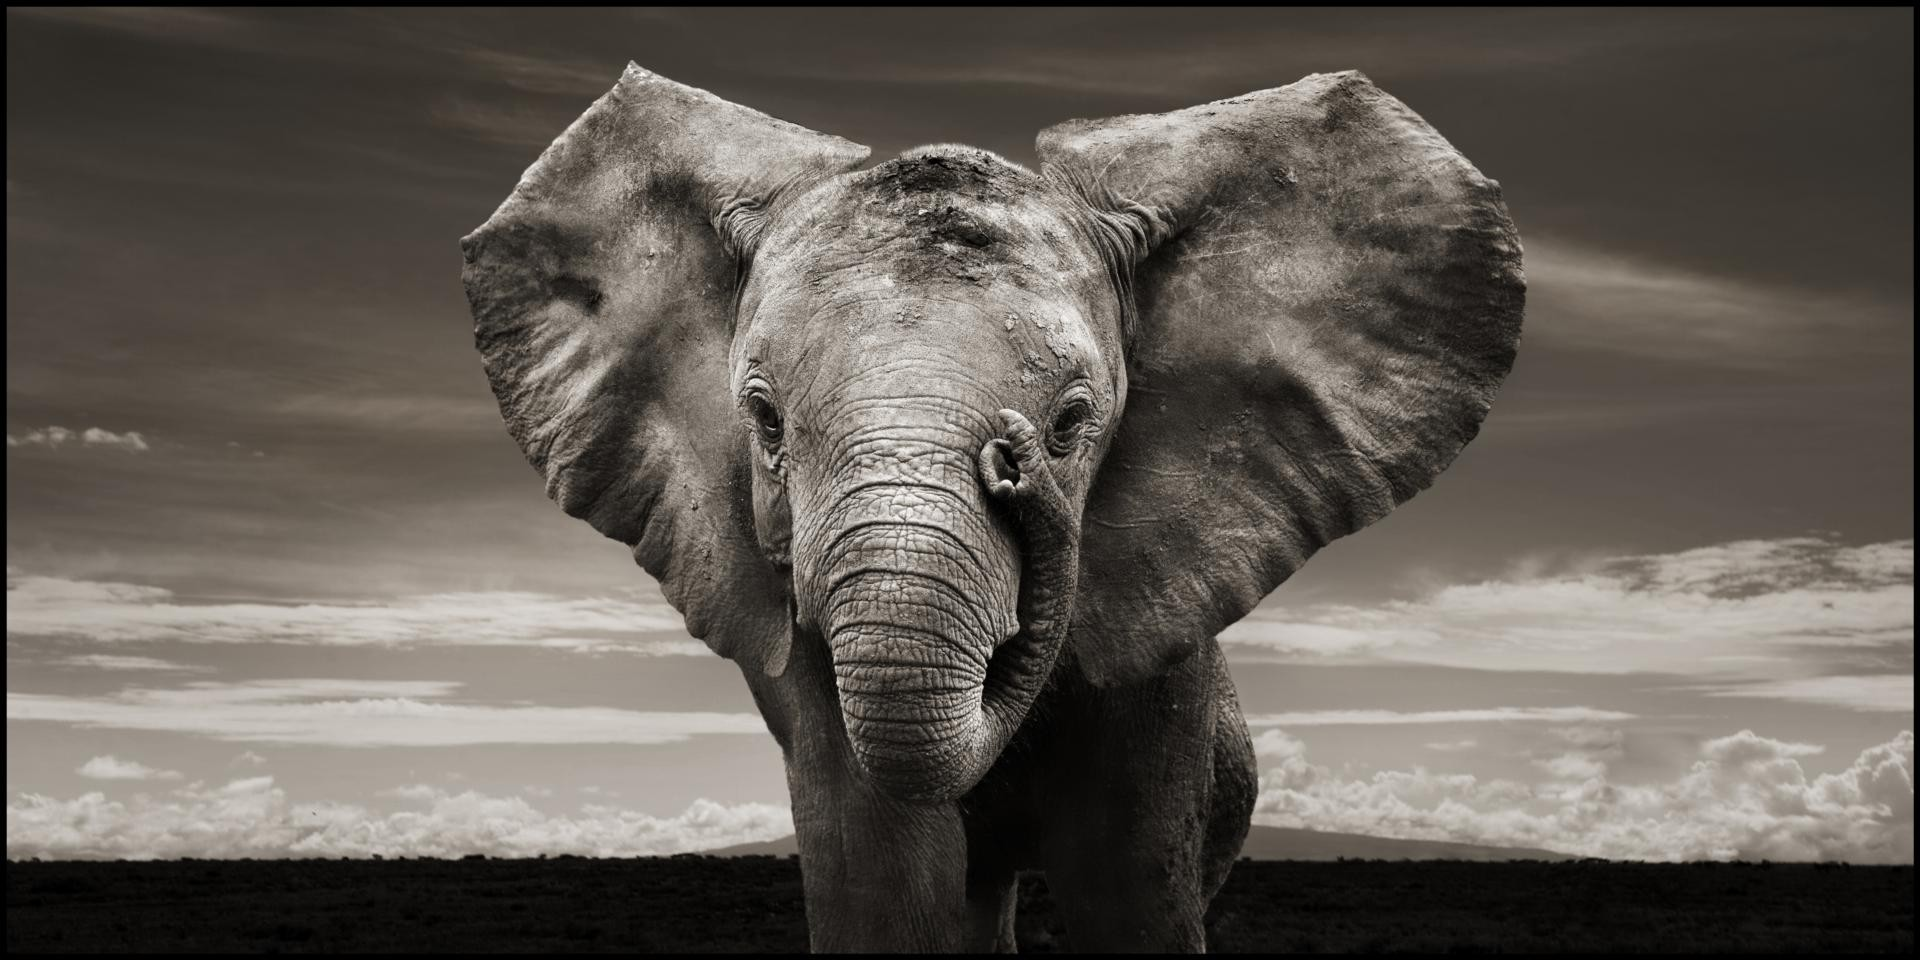 black and white photography Elephant Wallpaper HD Desktop 1920x960